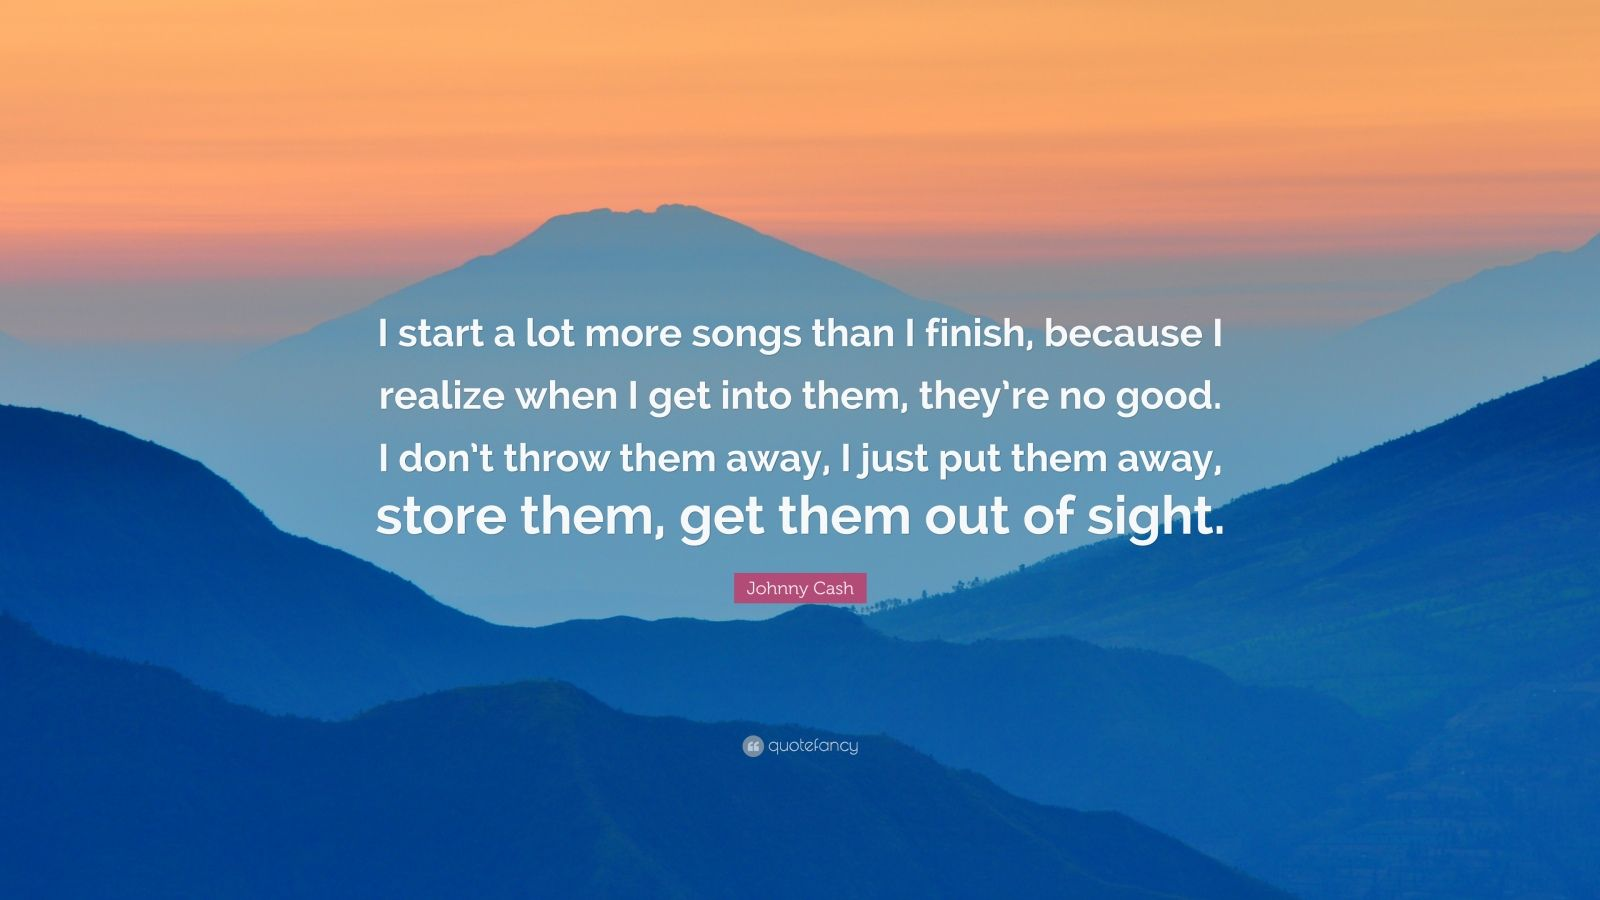 """Johnny Cash Quote: """"I start a lot more songs than I finish, because I realize when I get into them, they're no good. I don't throw them away, I just put them away, store them, get them out of sight."""""""